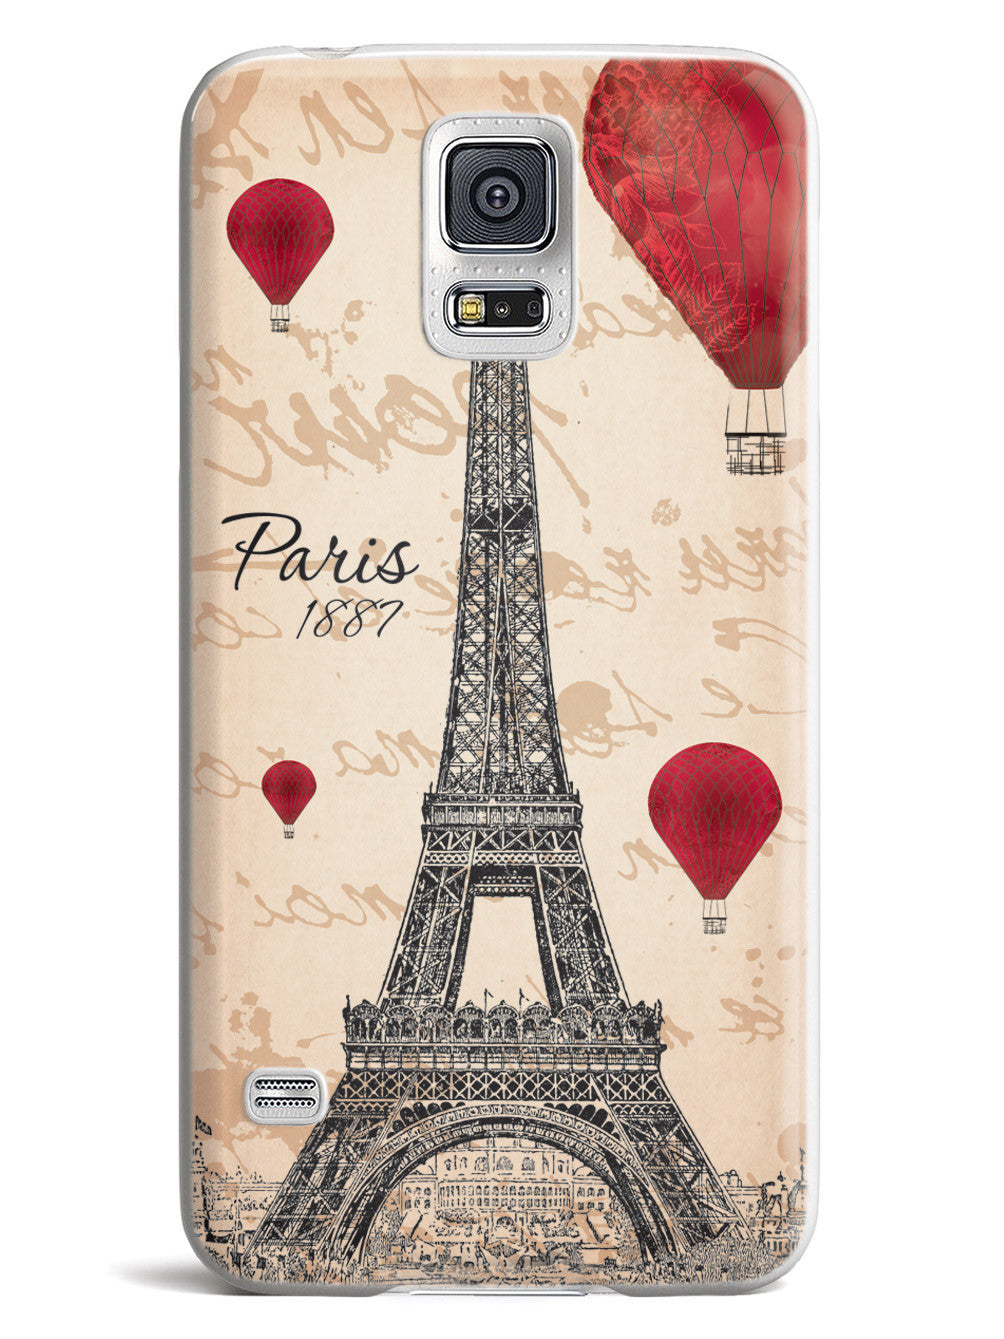 Paris Eiffel Tower 1887 Case